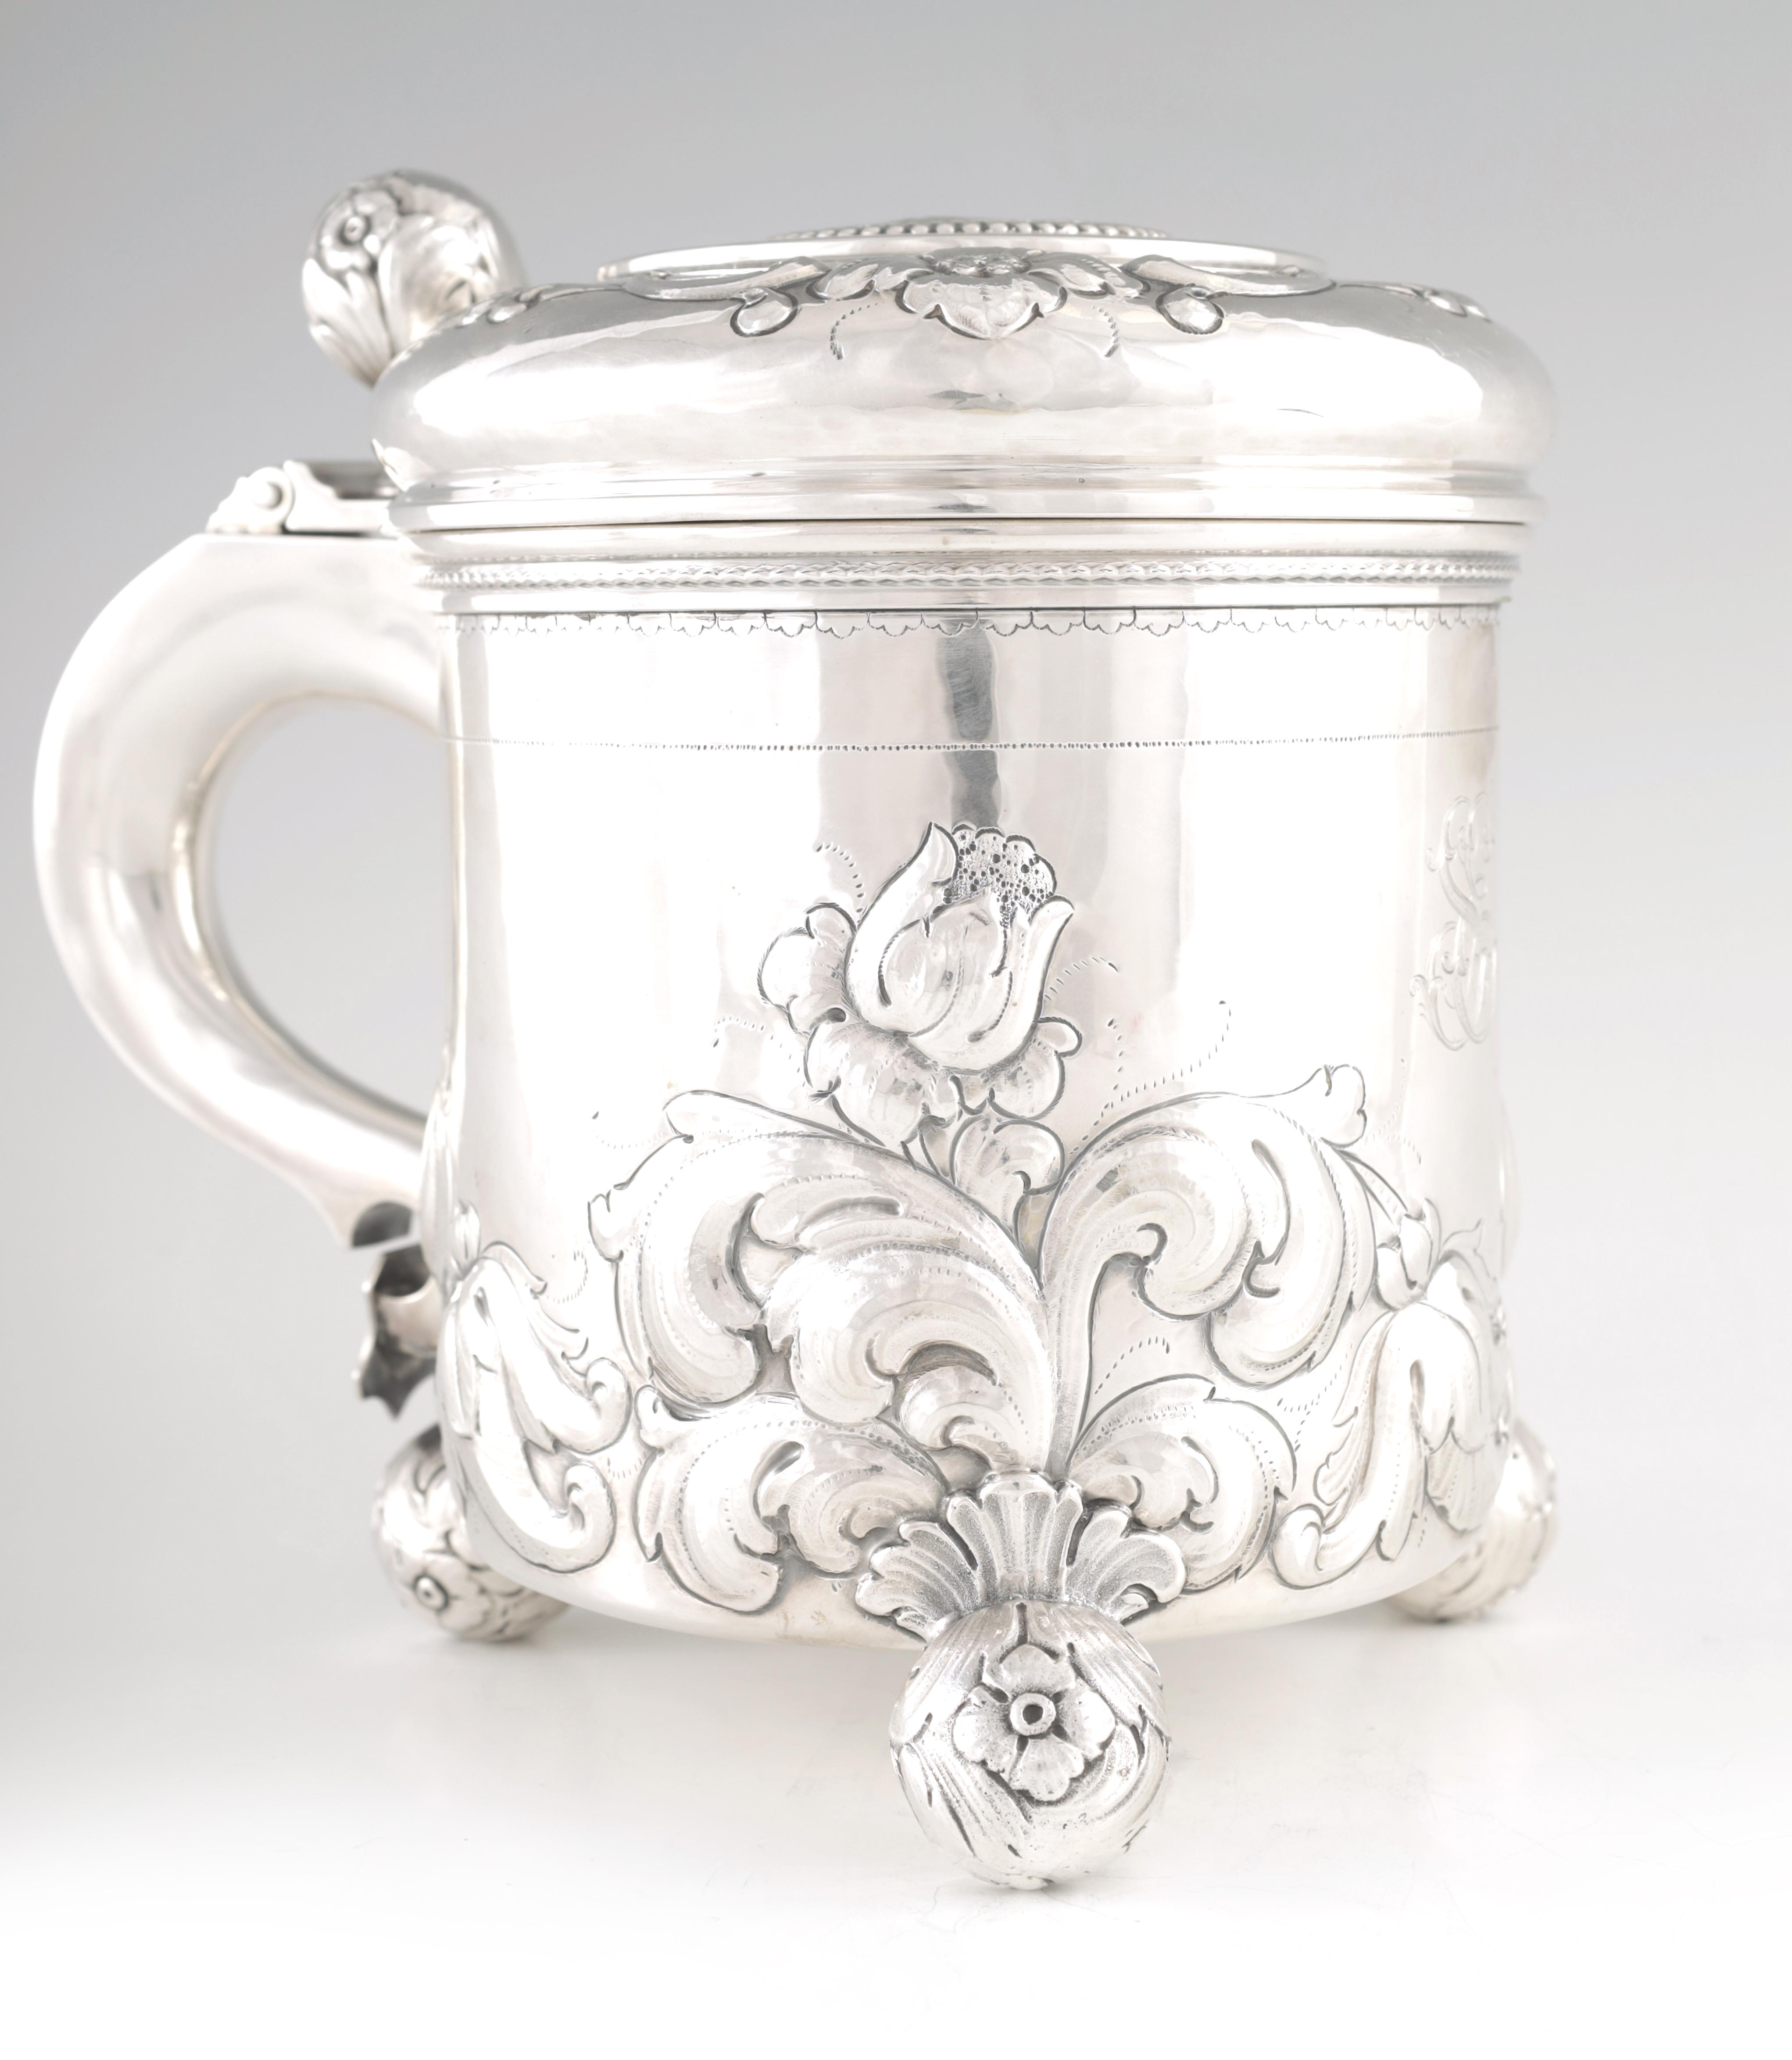 AN IMPRESSIVE EARLY 20TH CENTURY SWEDISH SILVER TANKARD with embossed ball finial to the hinged